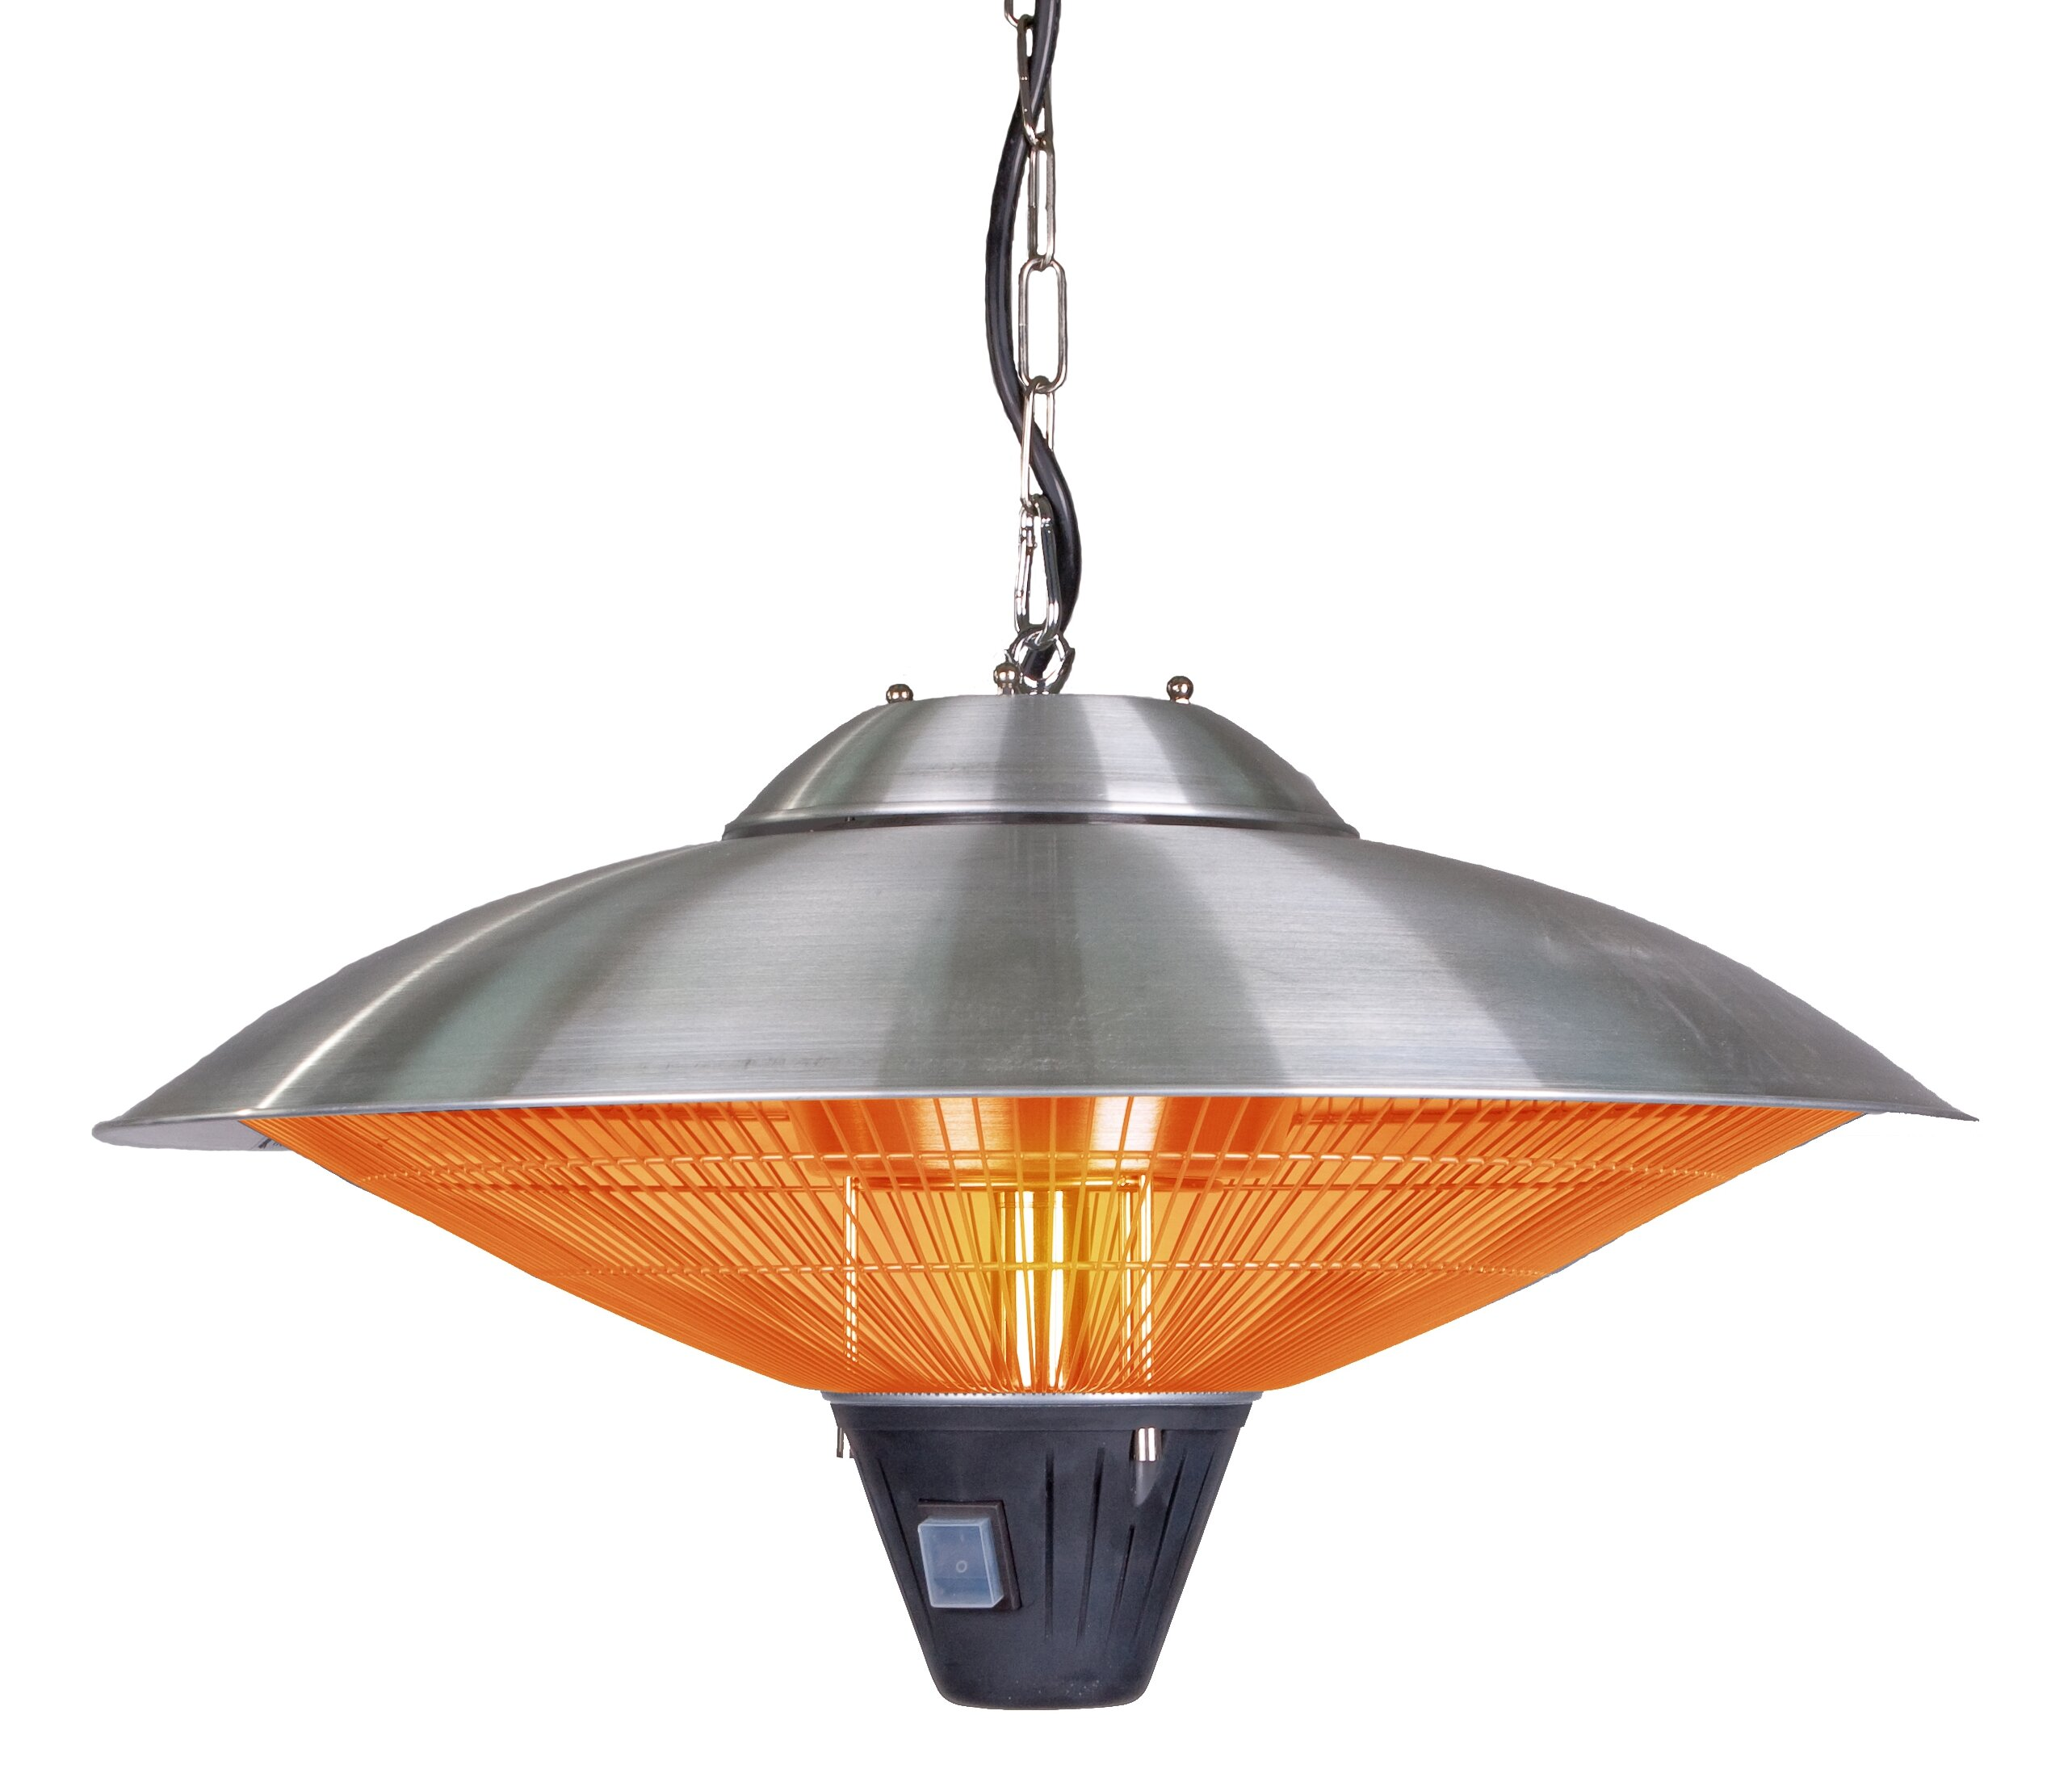 Fire Sense Hanging 1500 Watt Electric Hanging Patio Heater